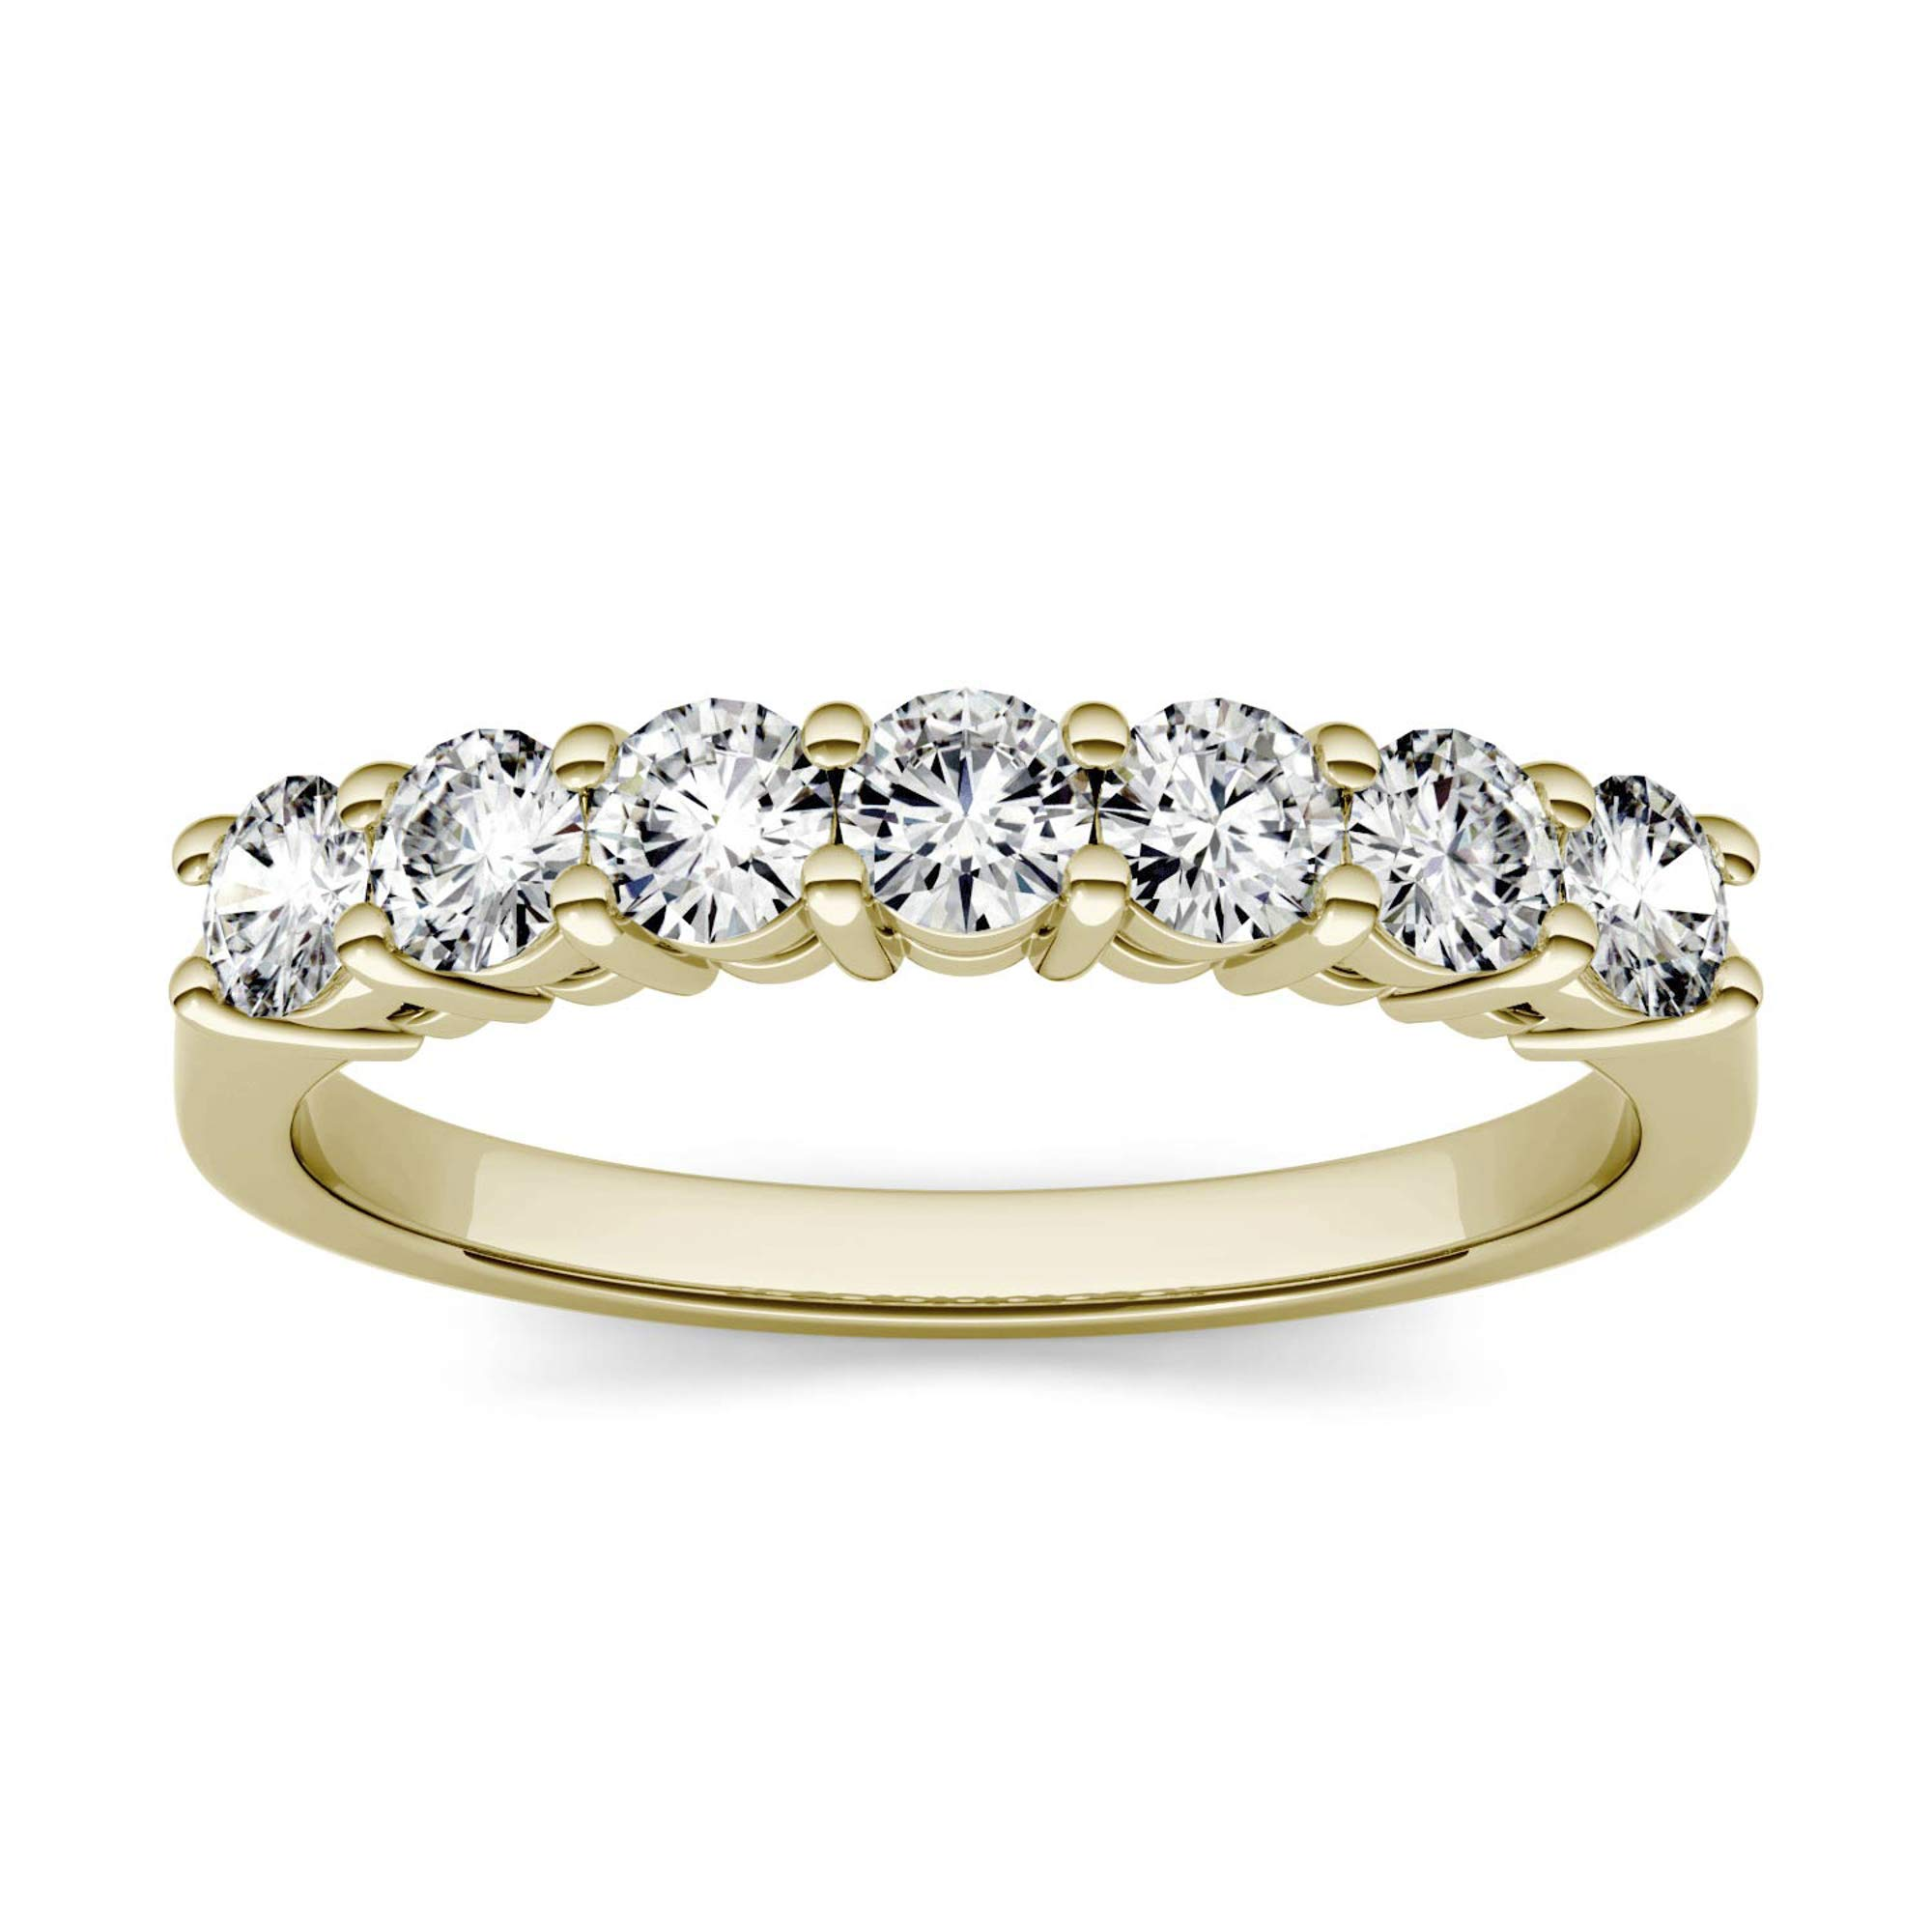 14K Yellow Gold 3.0mm Moissanite by Charles & Colvard Seven Stone Band- size 9, 0.70cttw DEW